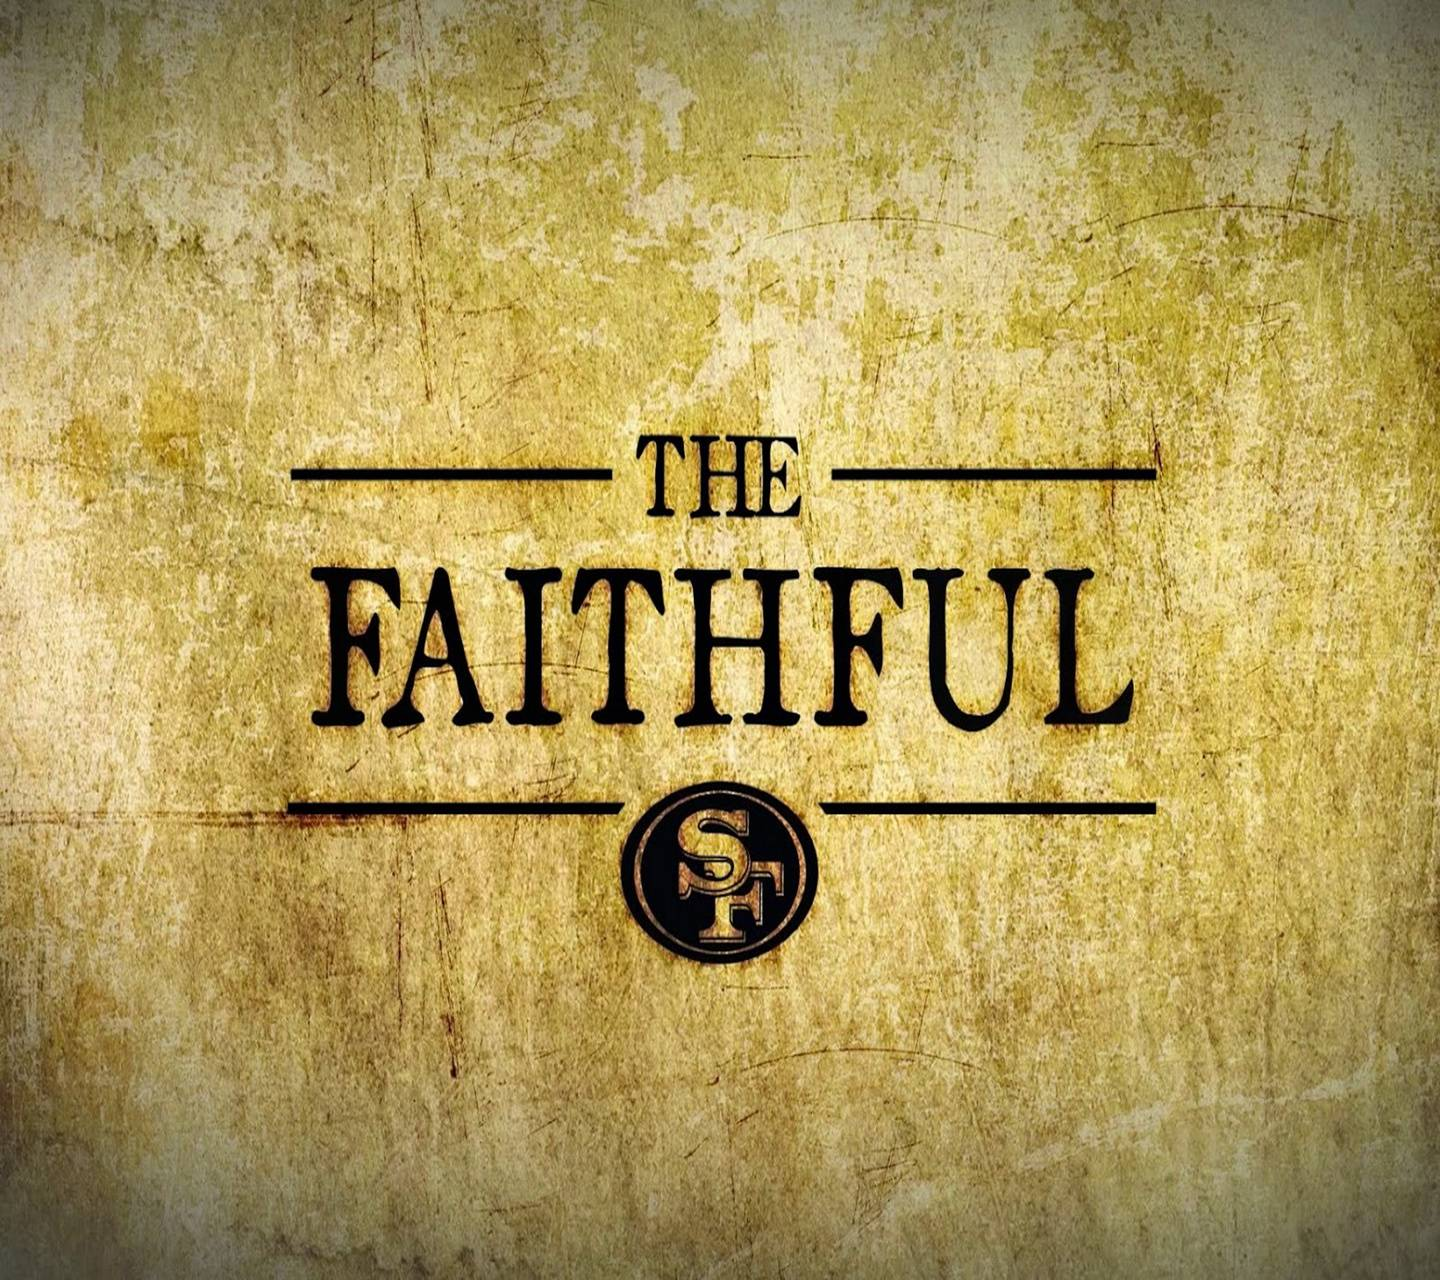 The Faithful 49ers